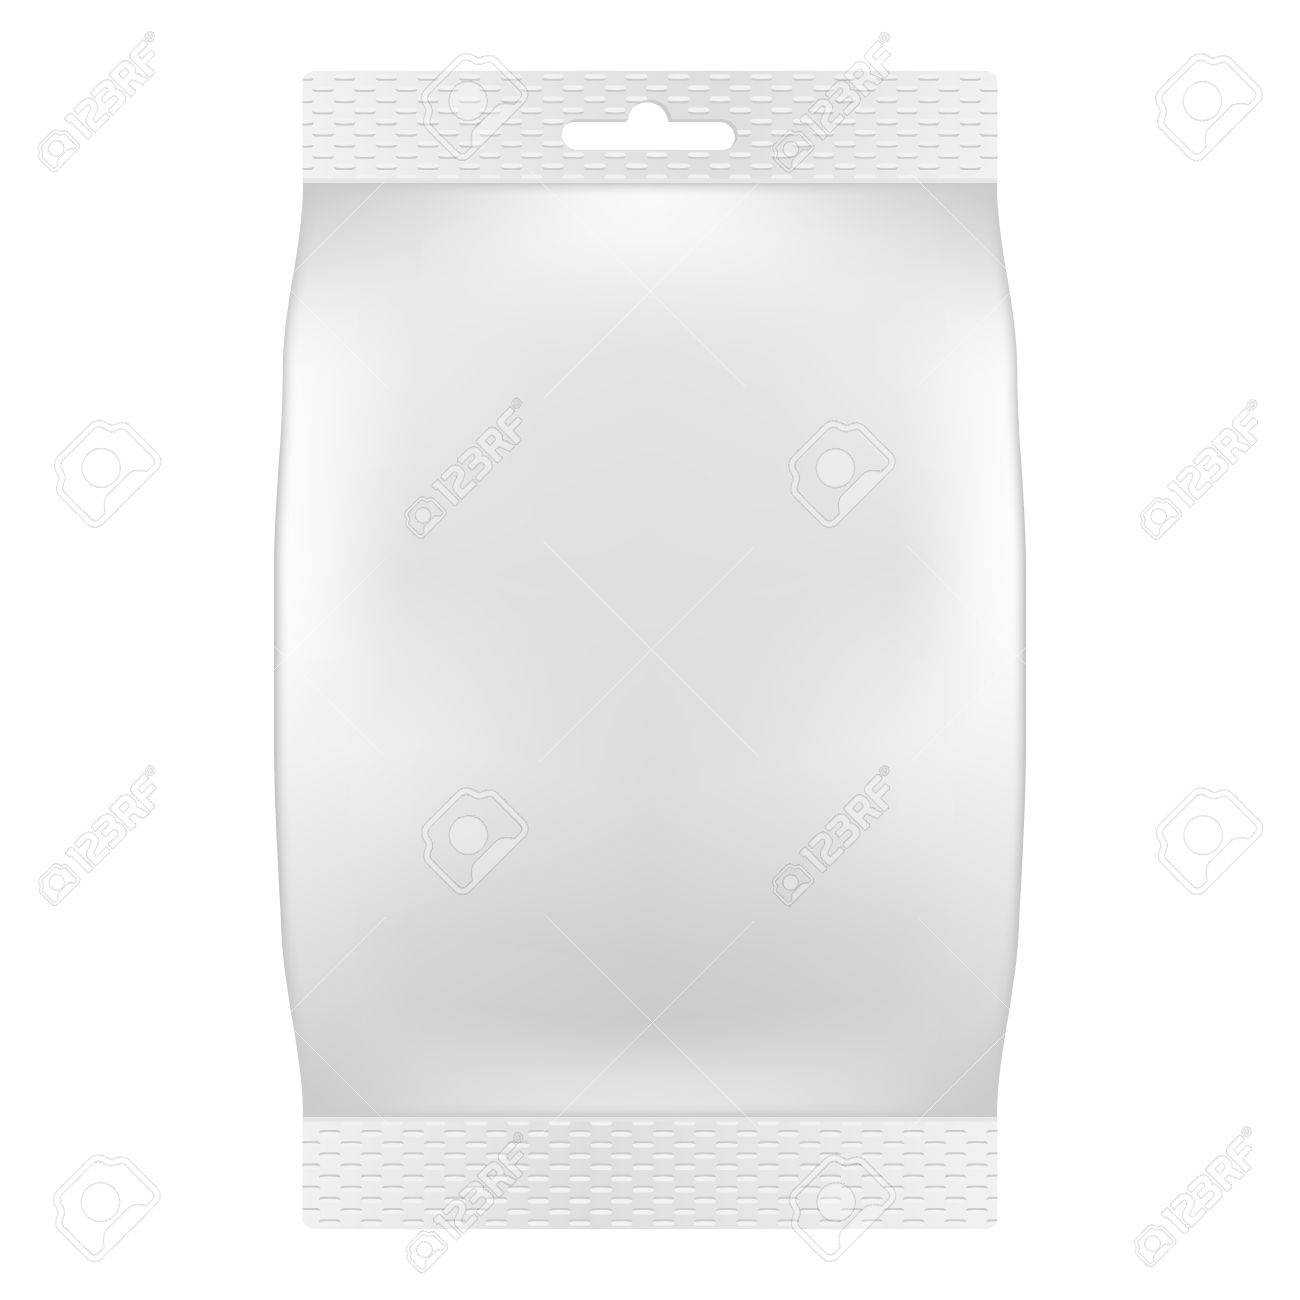 Blank white bag packaging for wipes, tissues or food  Vector  Product package template Stock Vector - 18633383